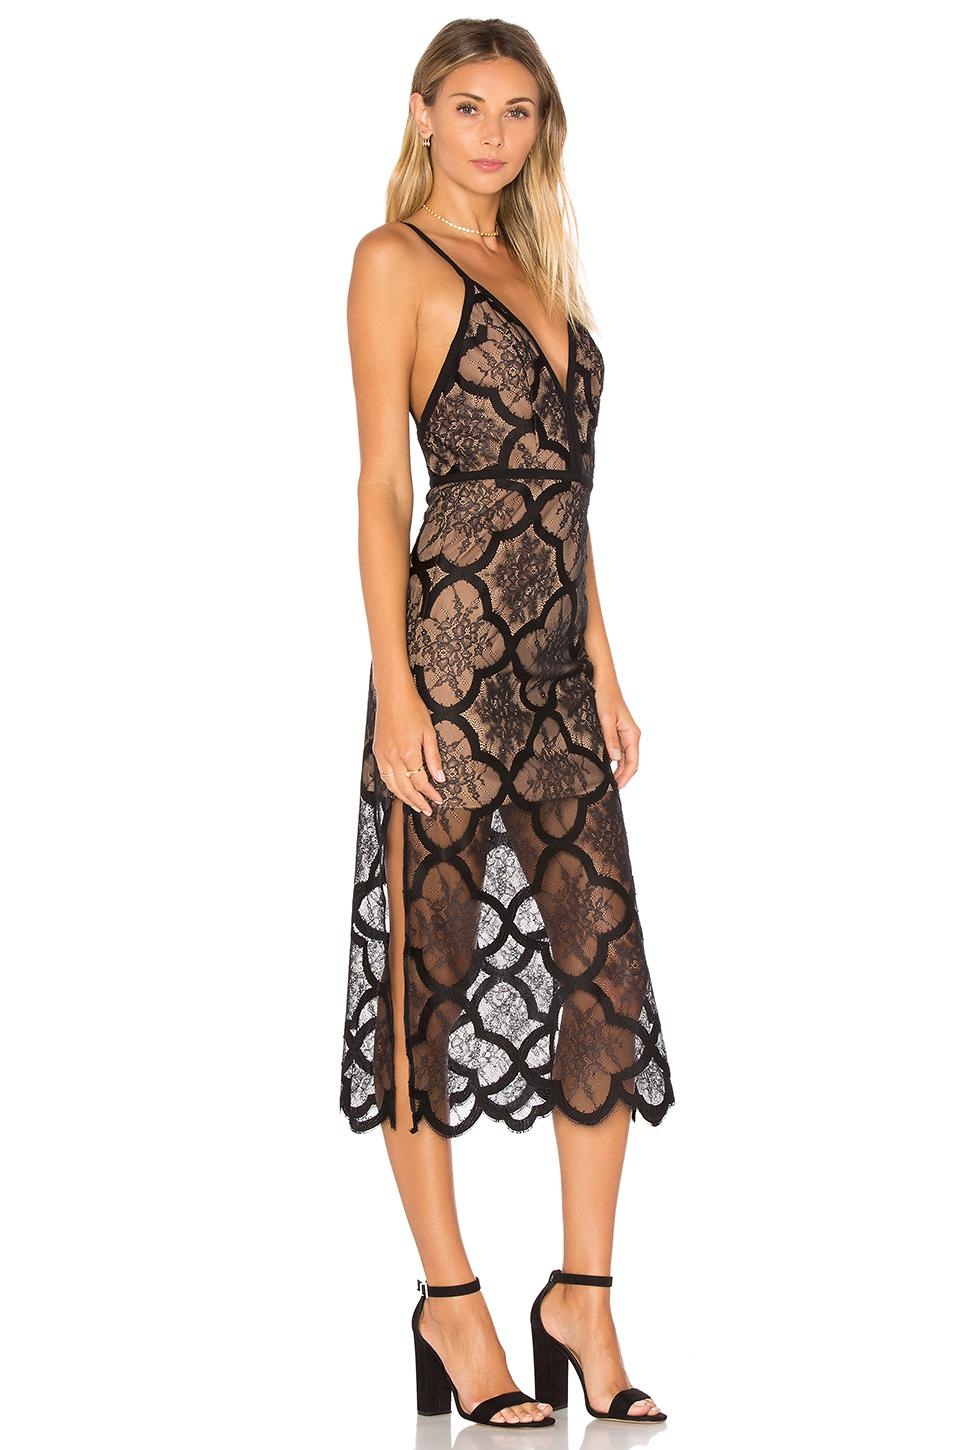 Shop for NBD x REVOLVE Saint Gown in Navy & Black Lace at